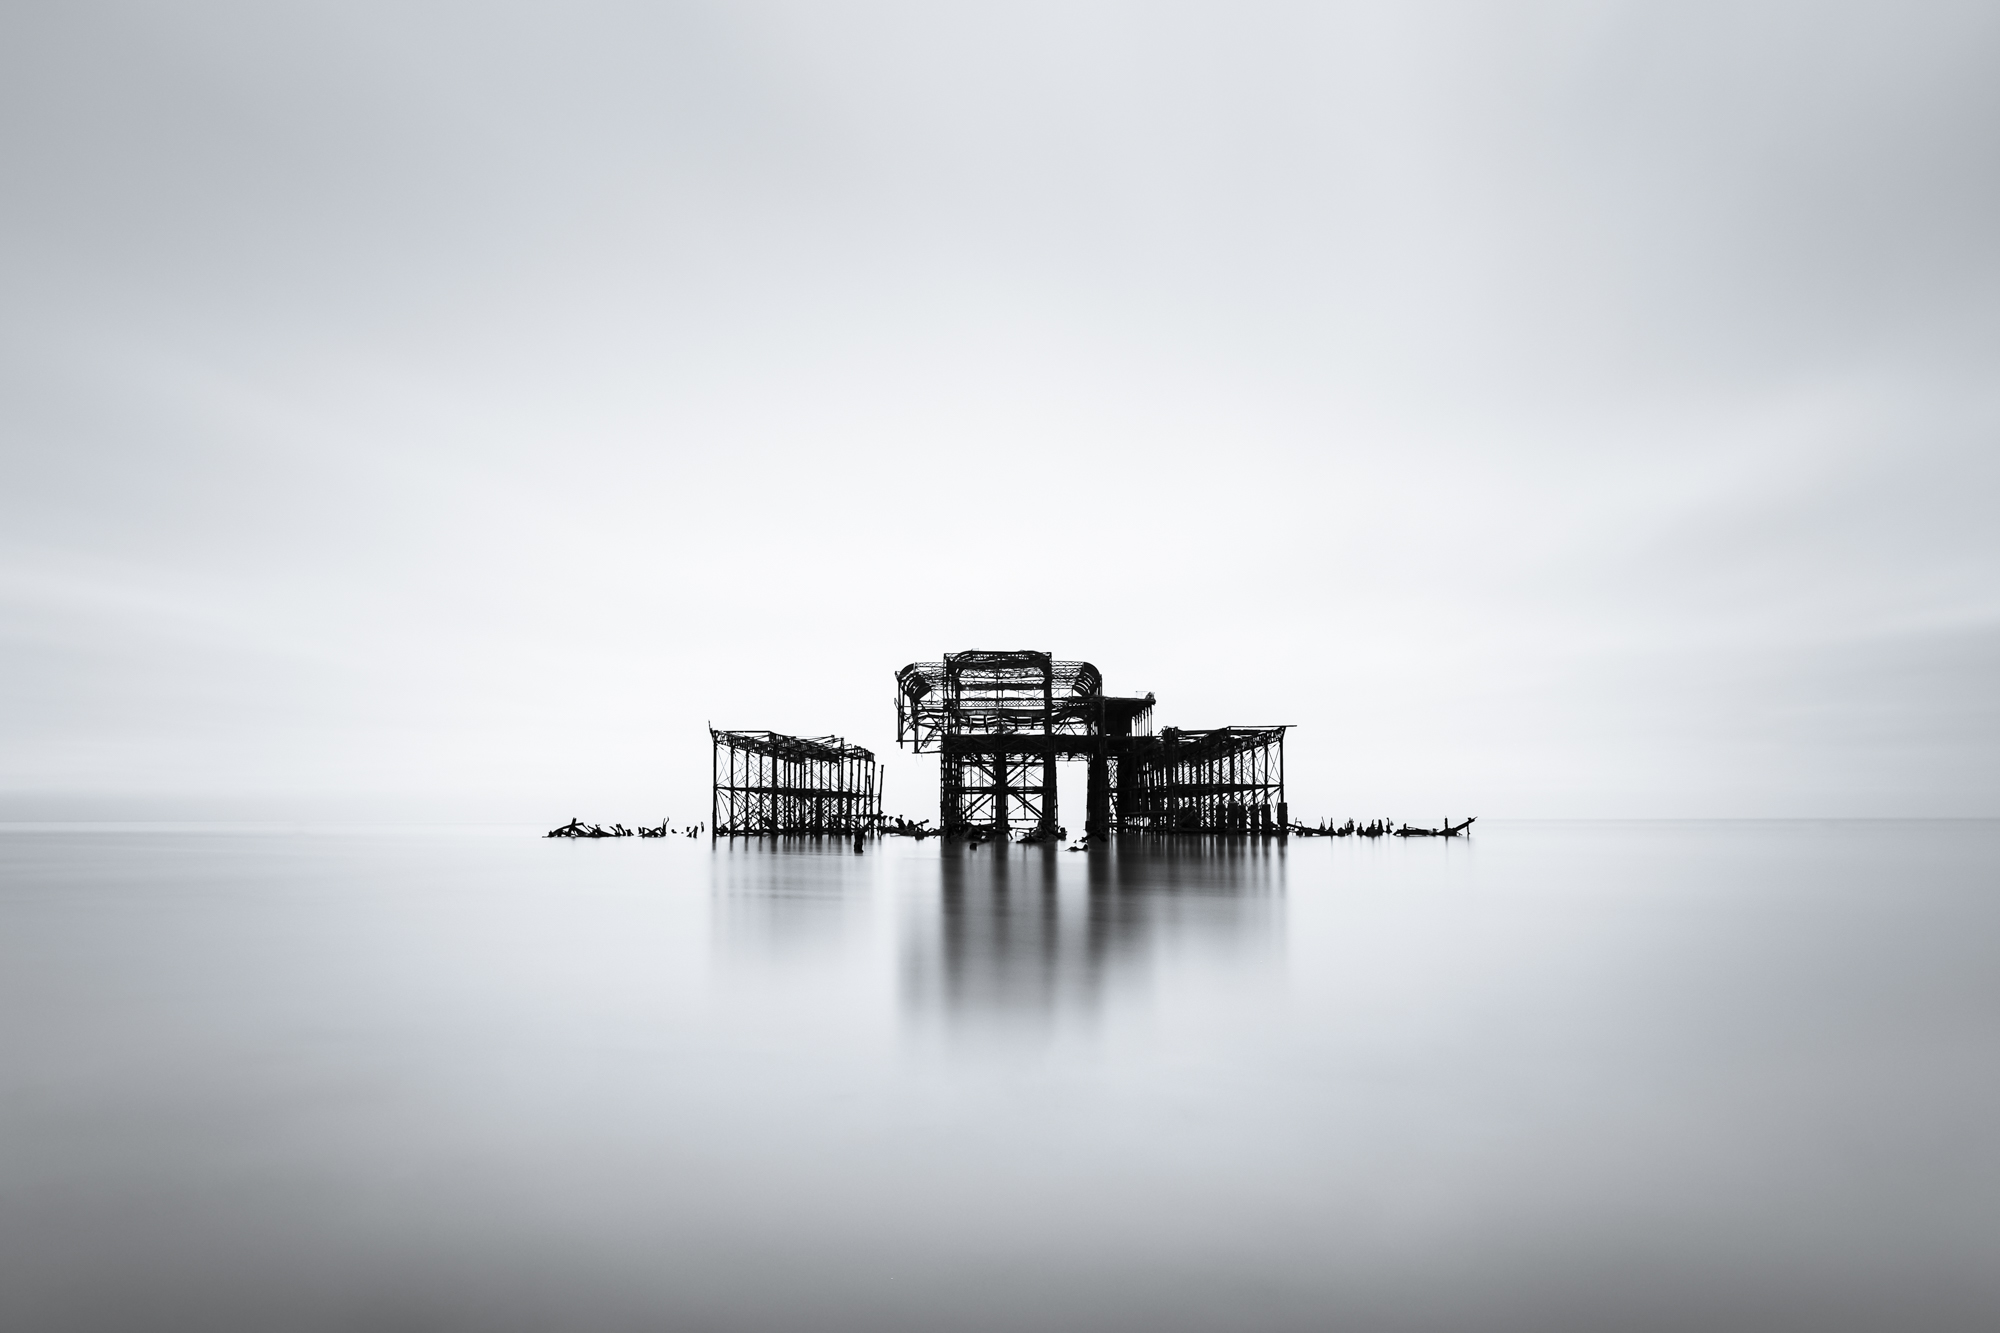 The West Pier | Fujifilm XT2 | XF10-24mm | 12mm | 199 seconds | f/7.1 | ISO200